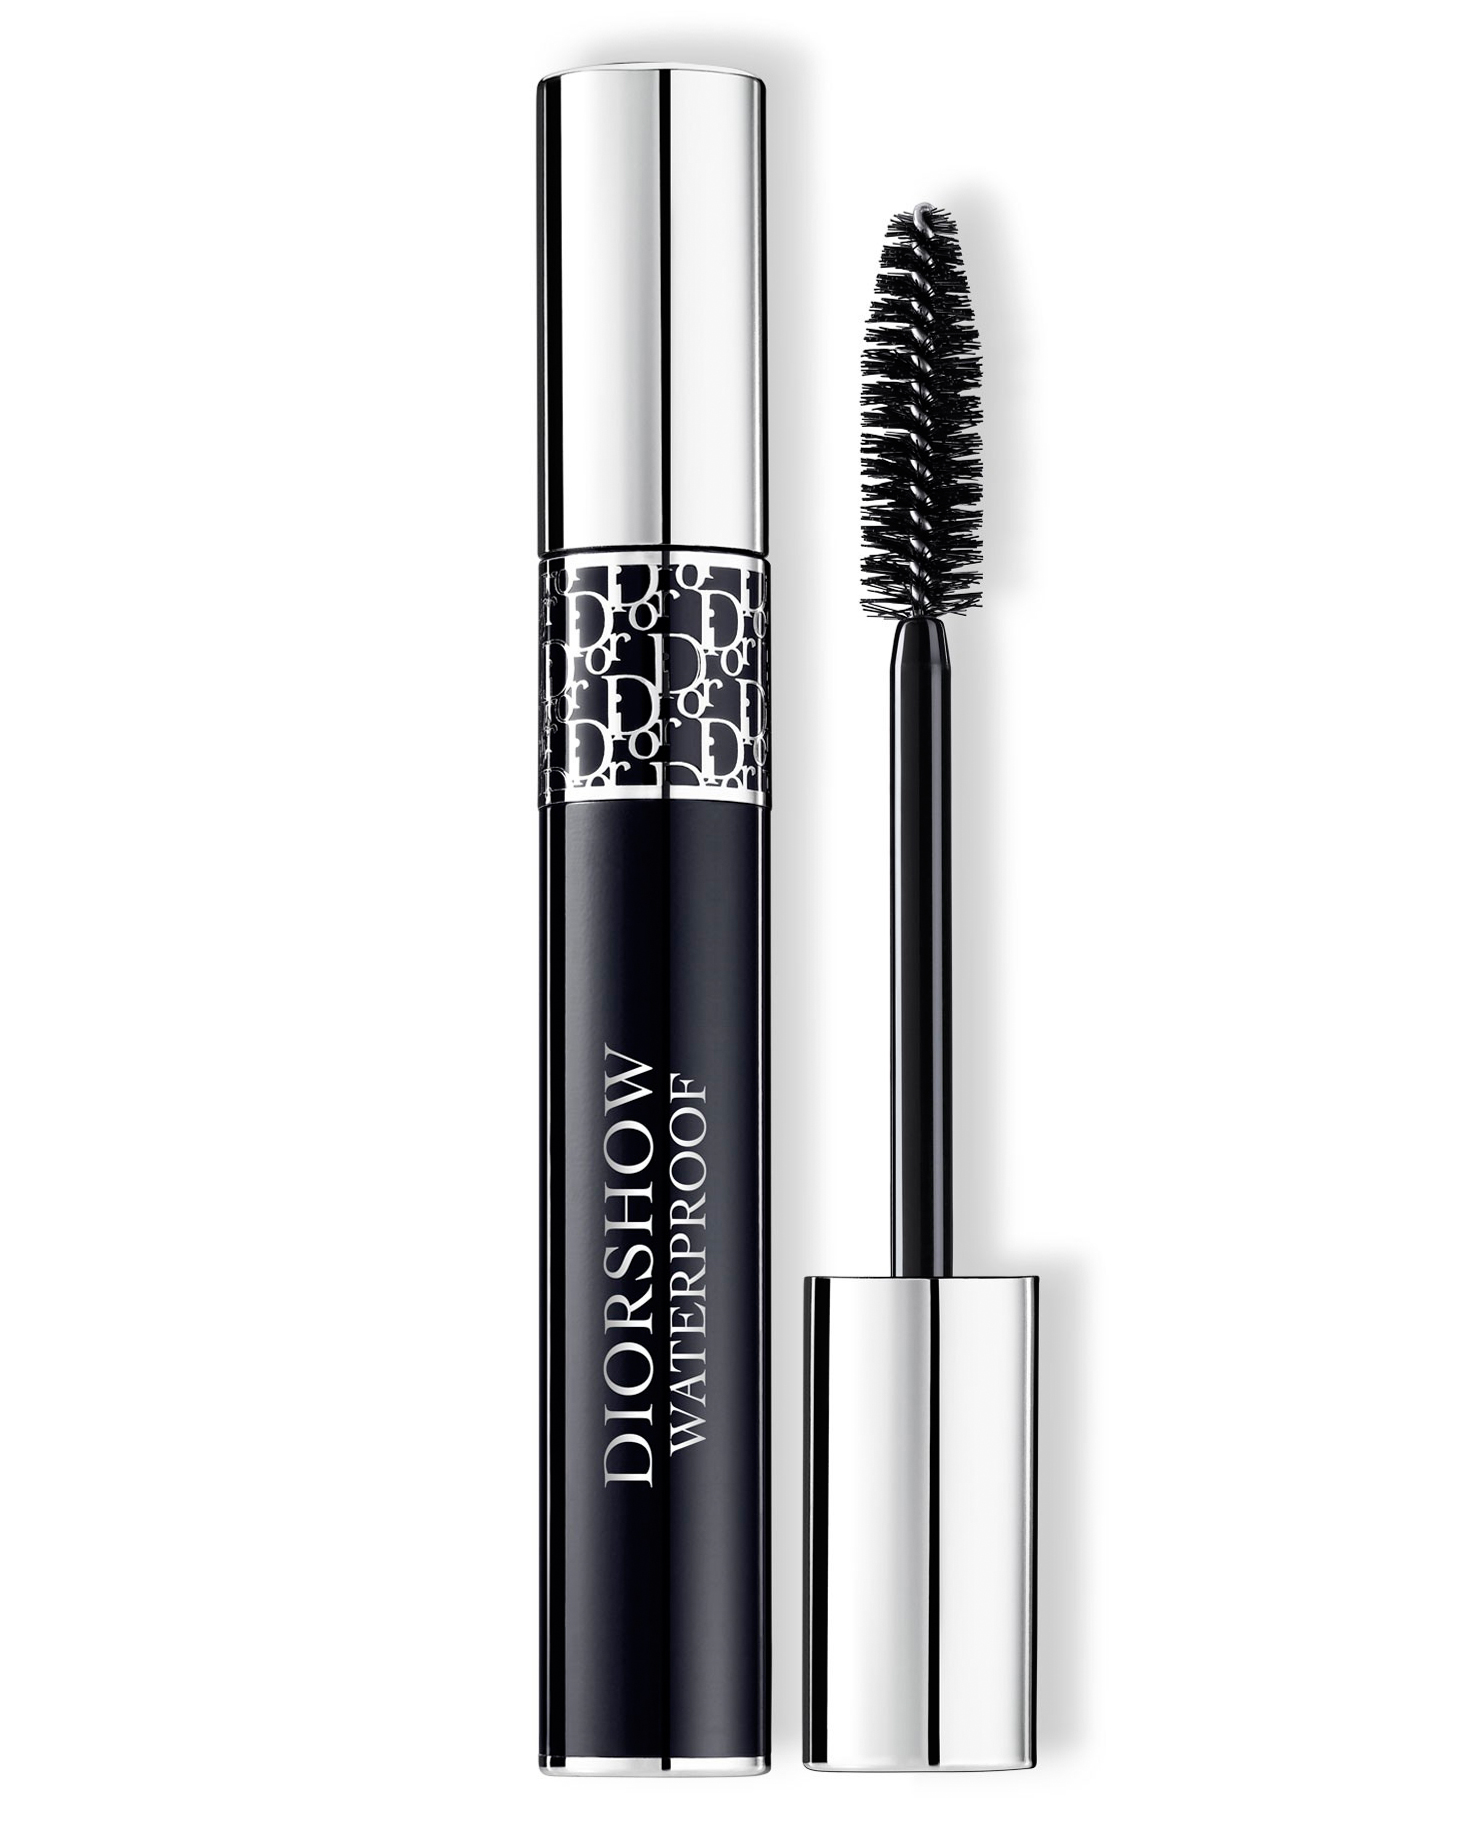 waterproof-mascaras-diorshow-0715.jpg